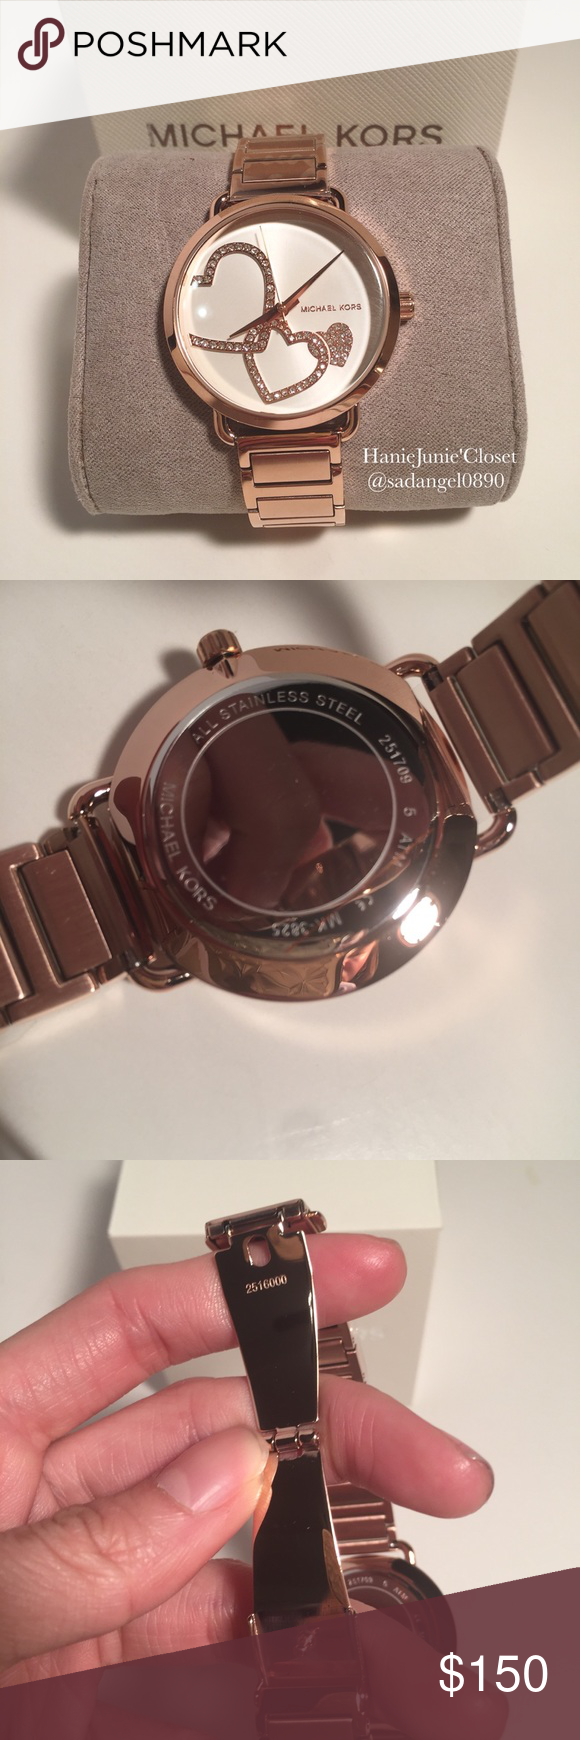 68dec17f199a Michael Kors Portia Rose Gold-Tone Bracelet Watch BRAND NEW AND 100%  AUTHENTIC.